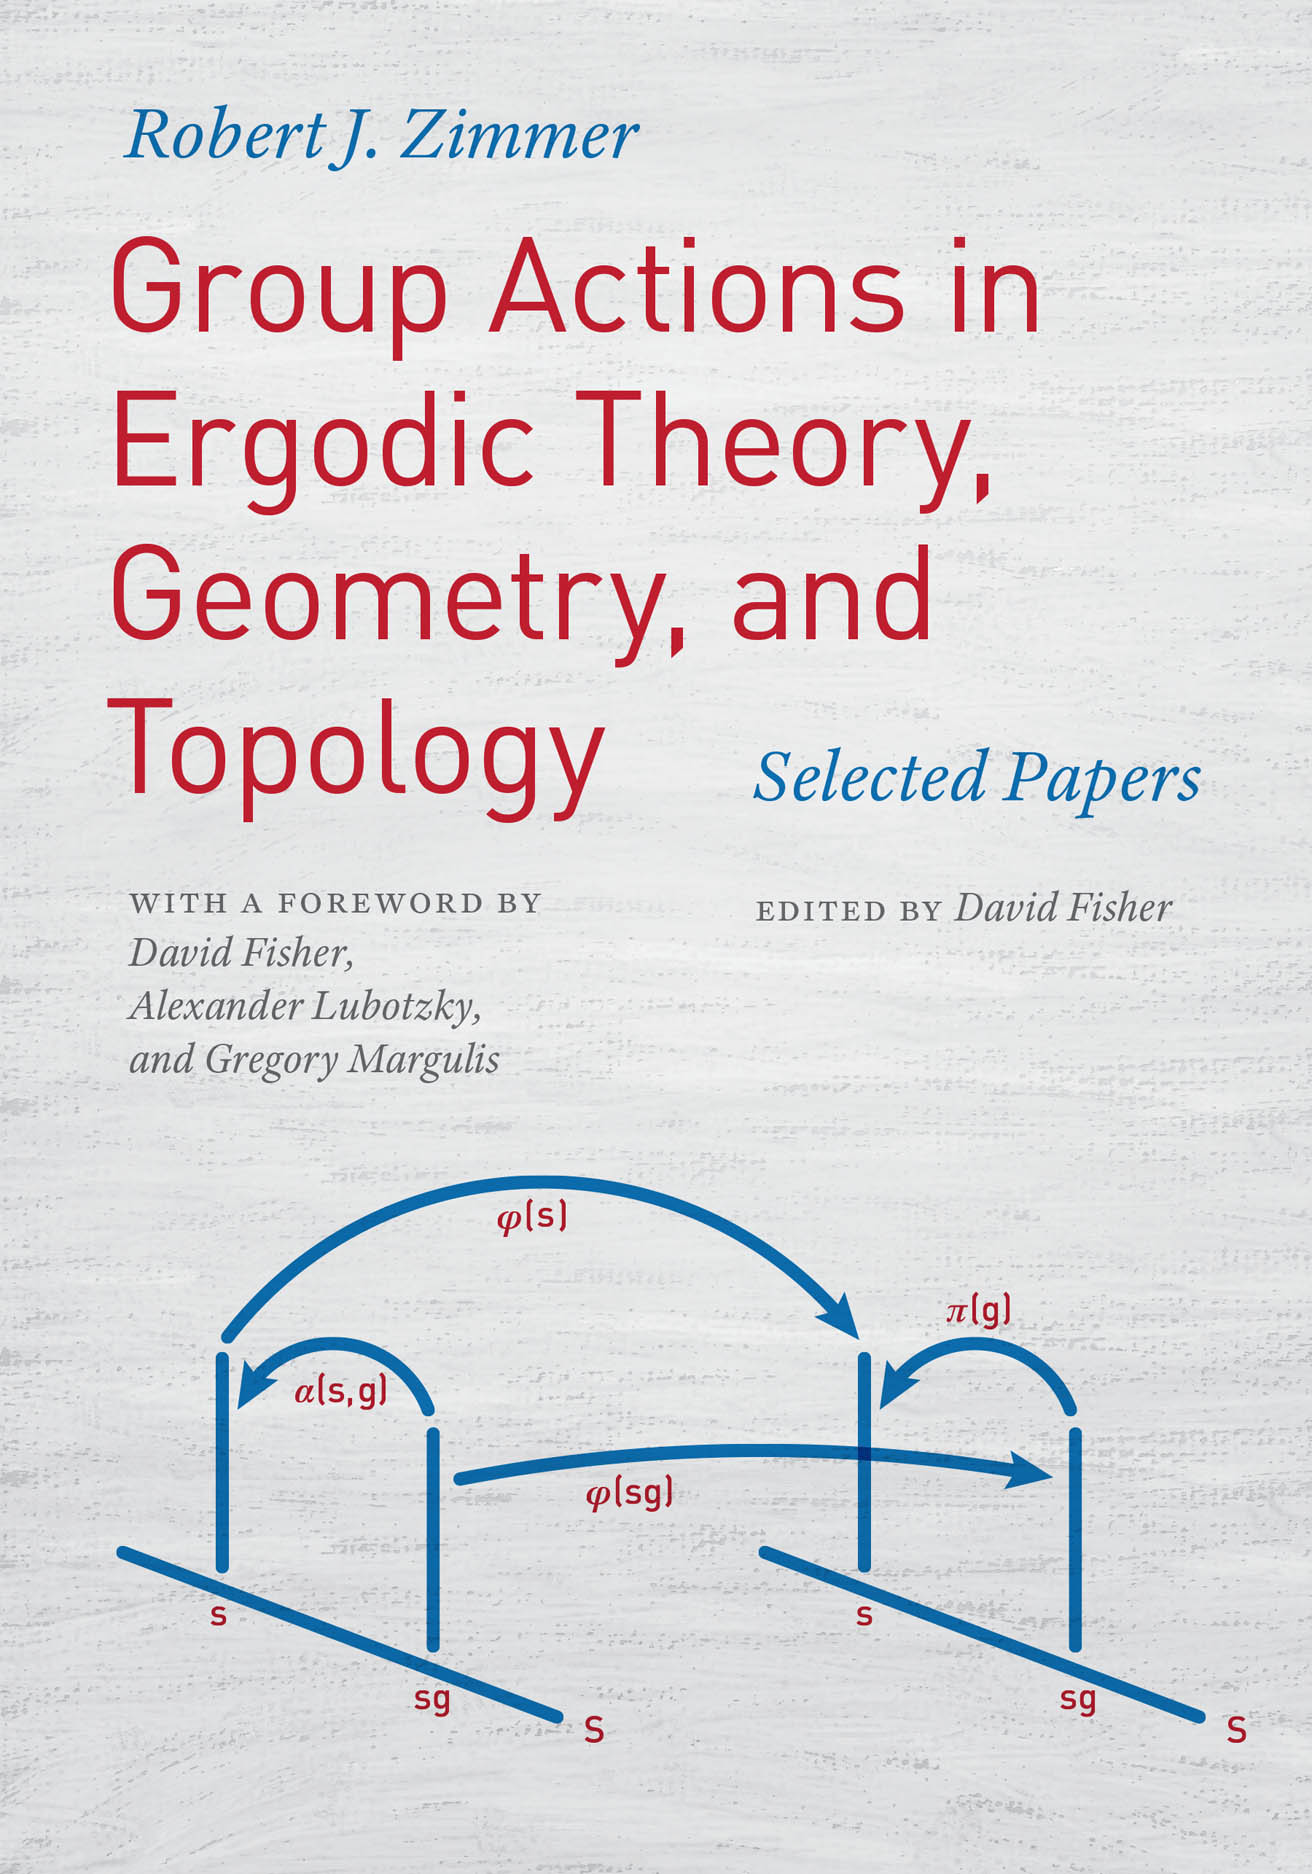 Group Actions in Ergodic Theory, Geometry, and Topology: Selected Papers